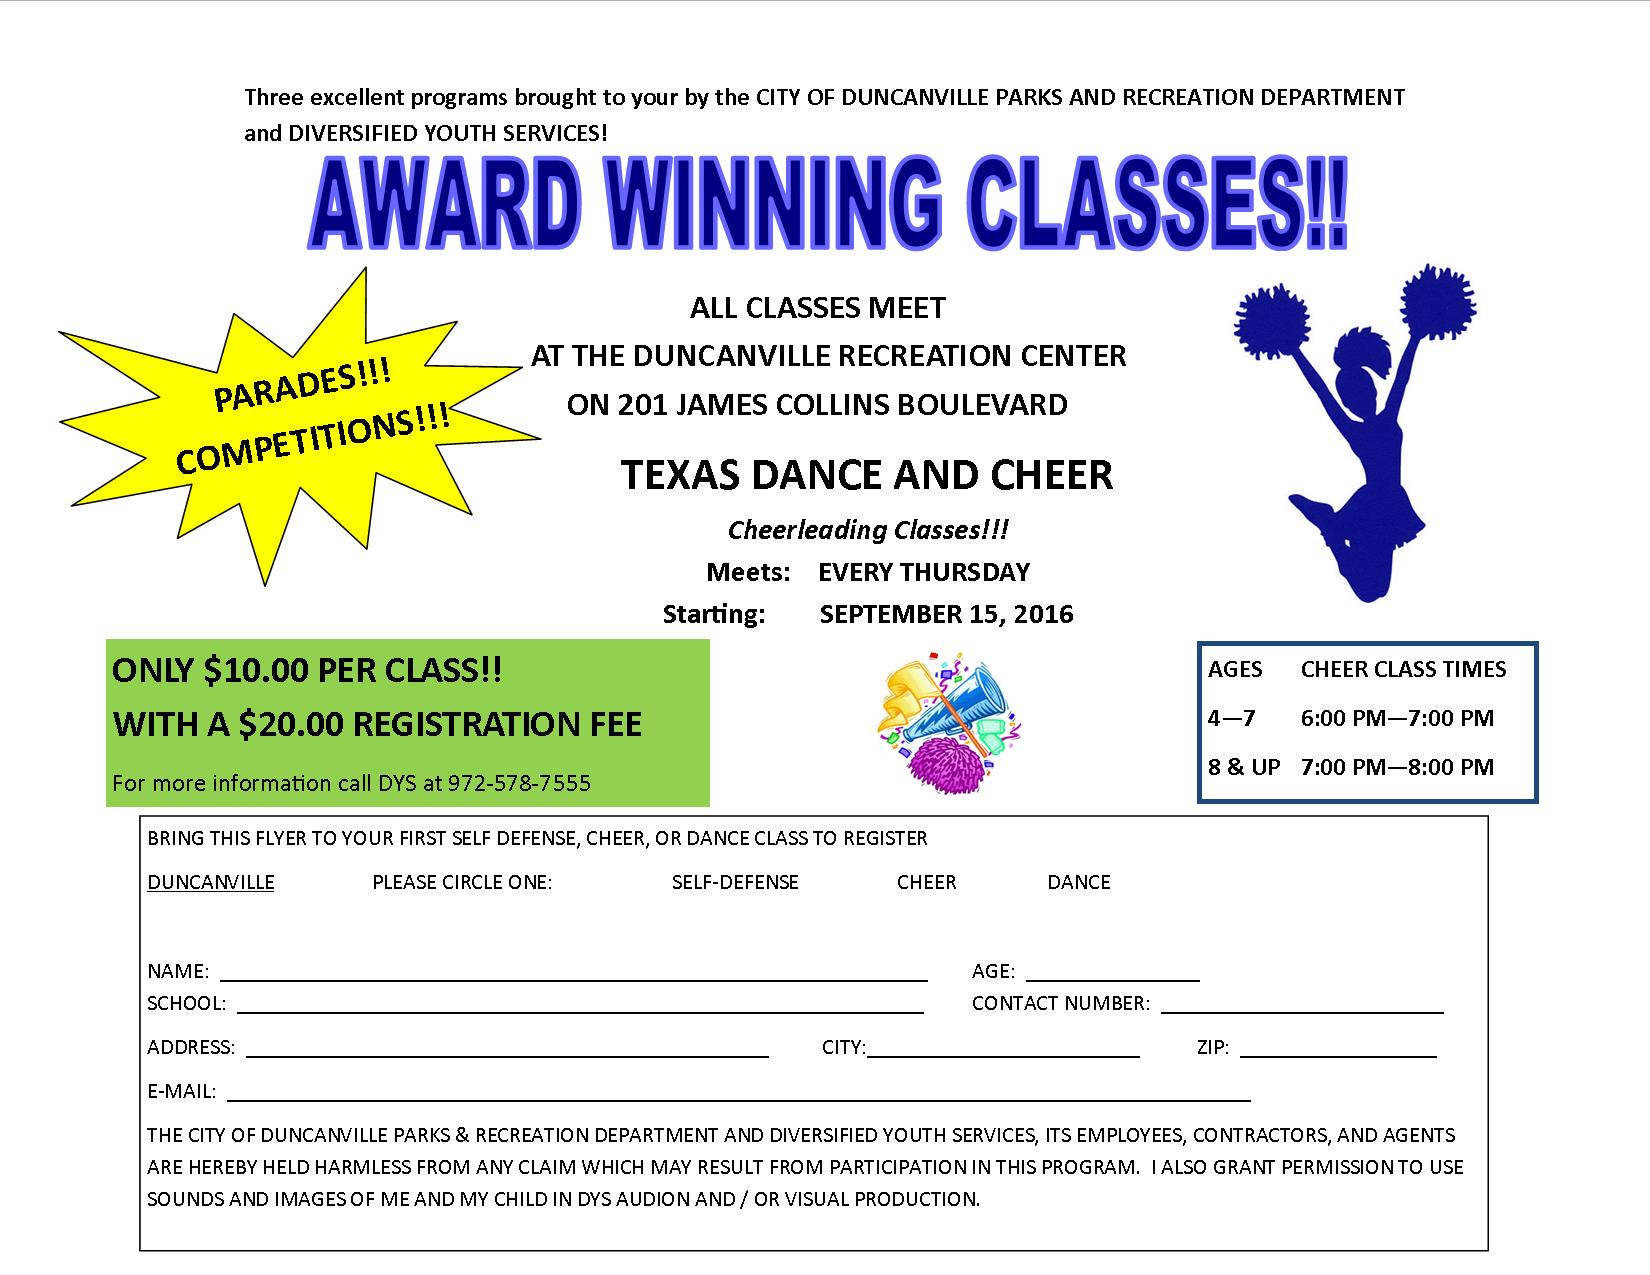 dys_texas-dance-and-cheer